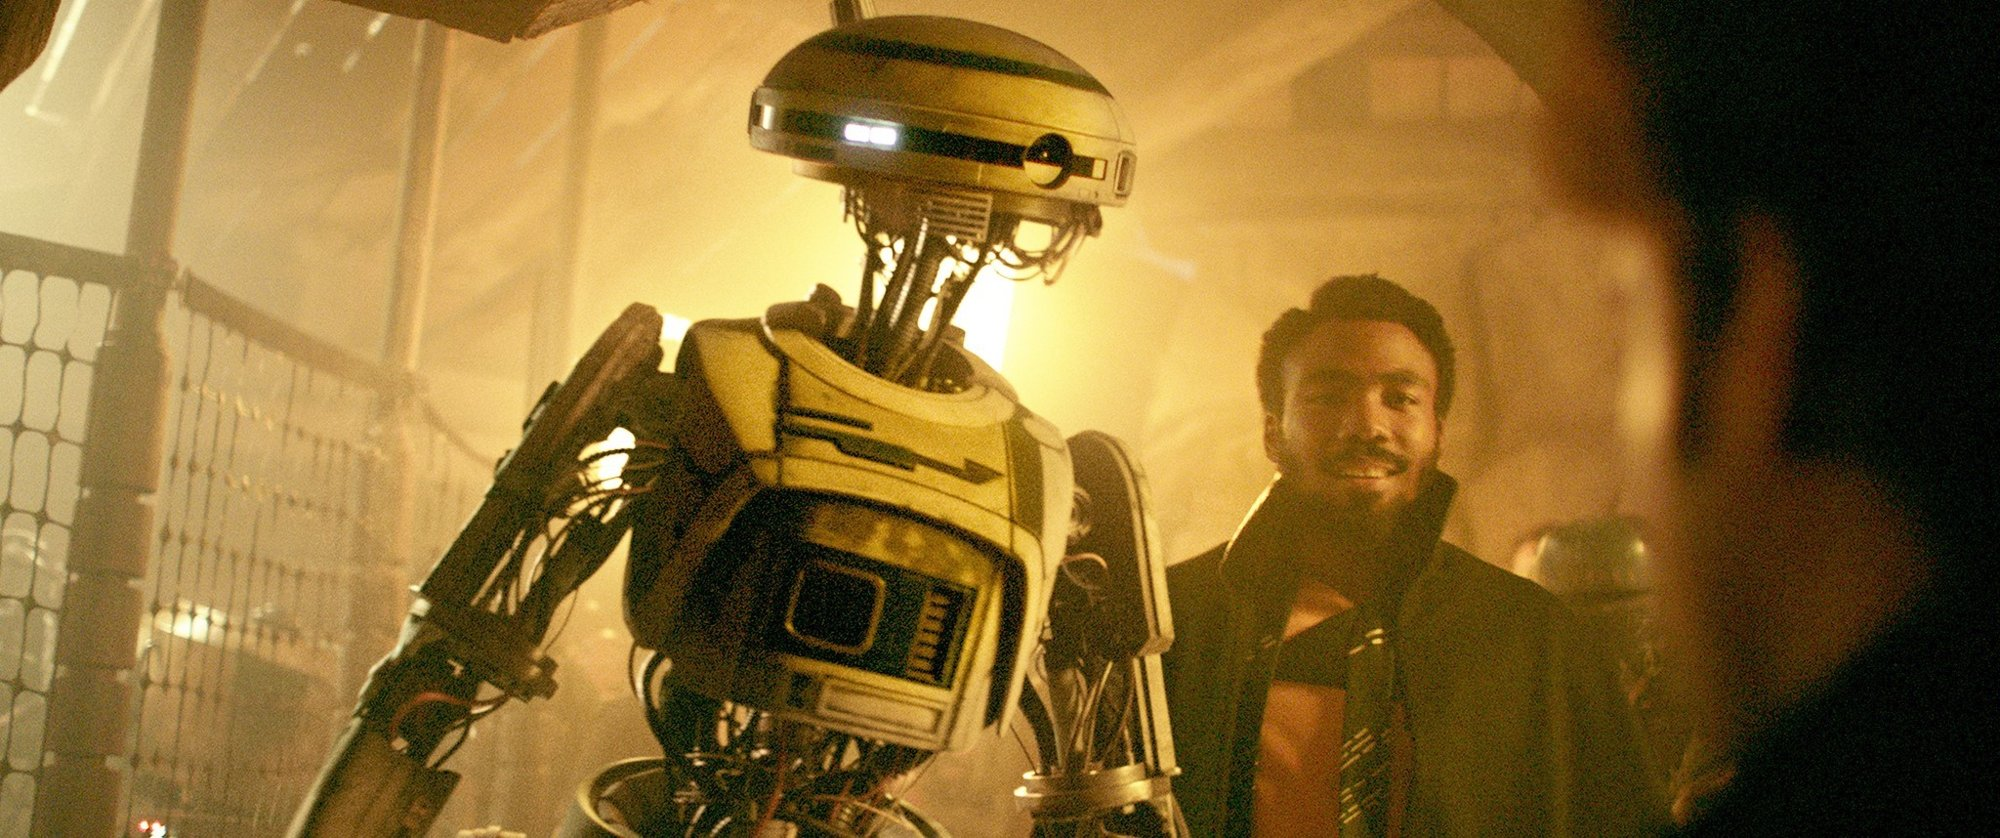 L3-37 and Lando Calrissian (Donald Glover) from Walt Disney Pictures' Solo: A Star Wars Story (2018)